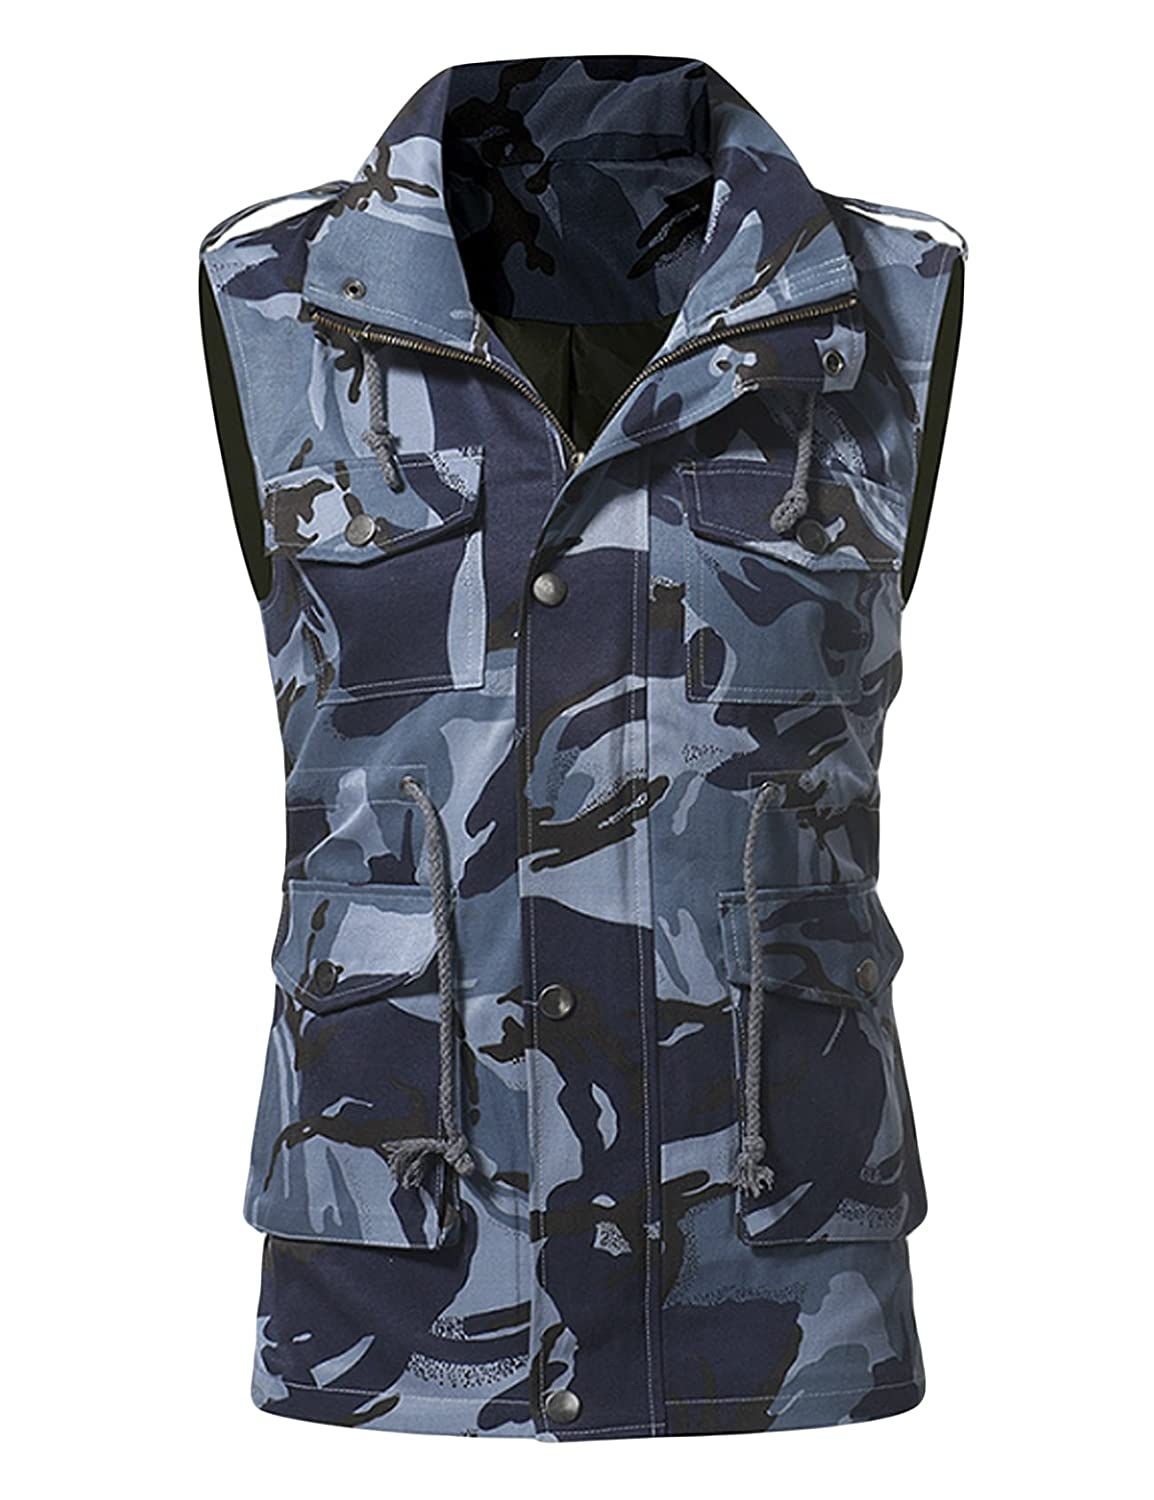 Jueshanzj Mens Camouflage Vest Multi Pocket Outdoor Climbing